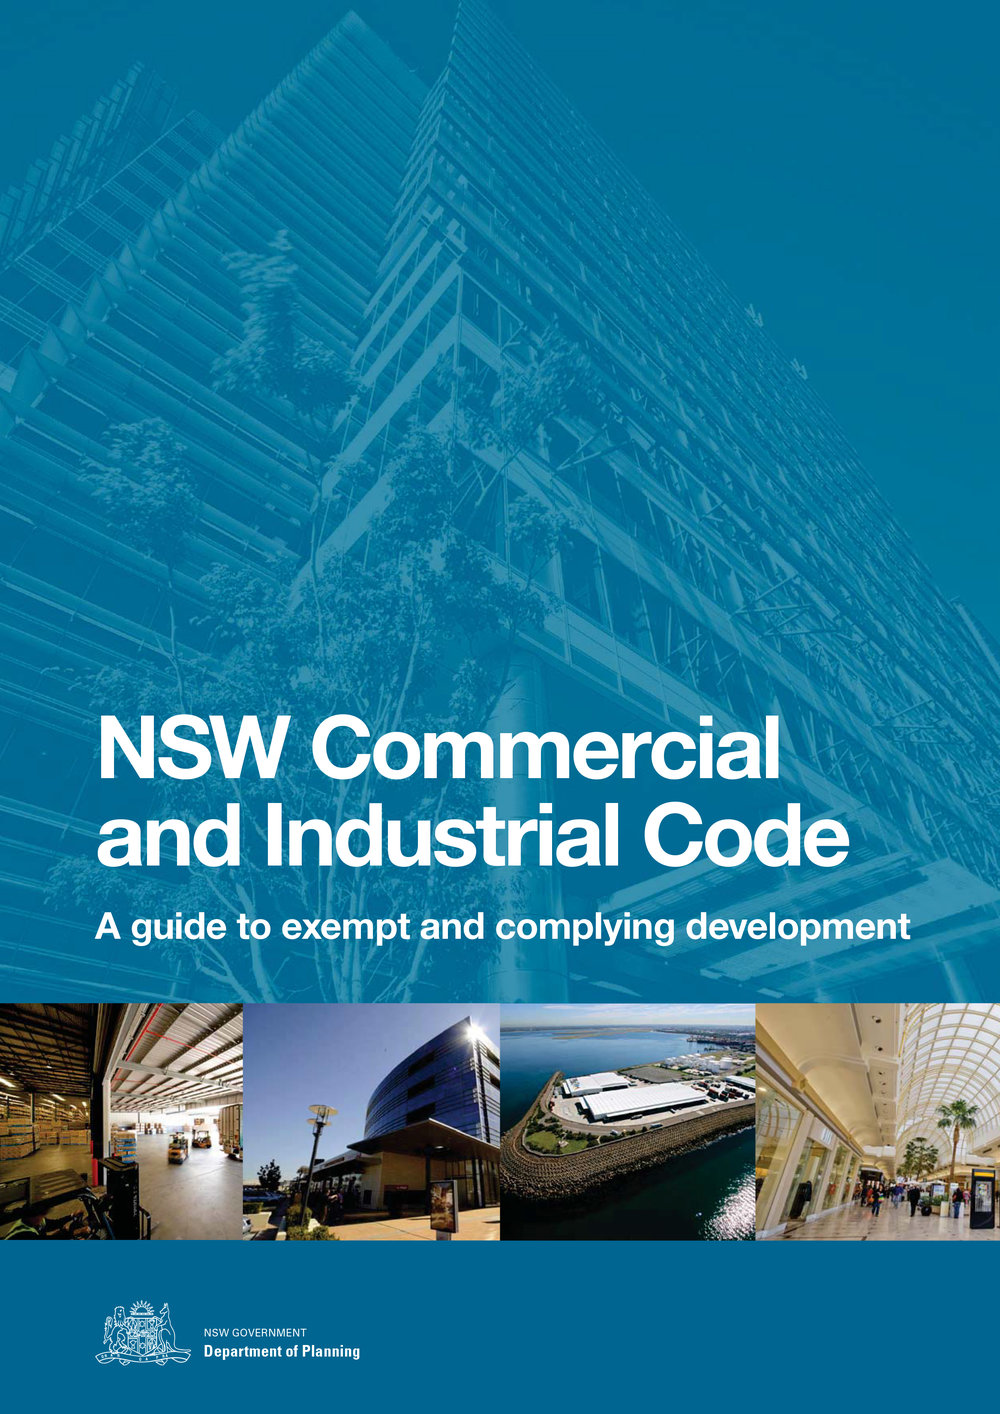 NSW Comercial and Industrial Code